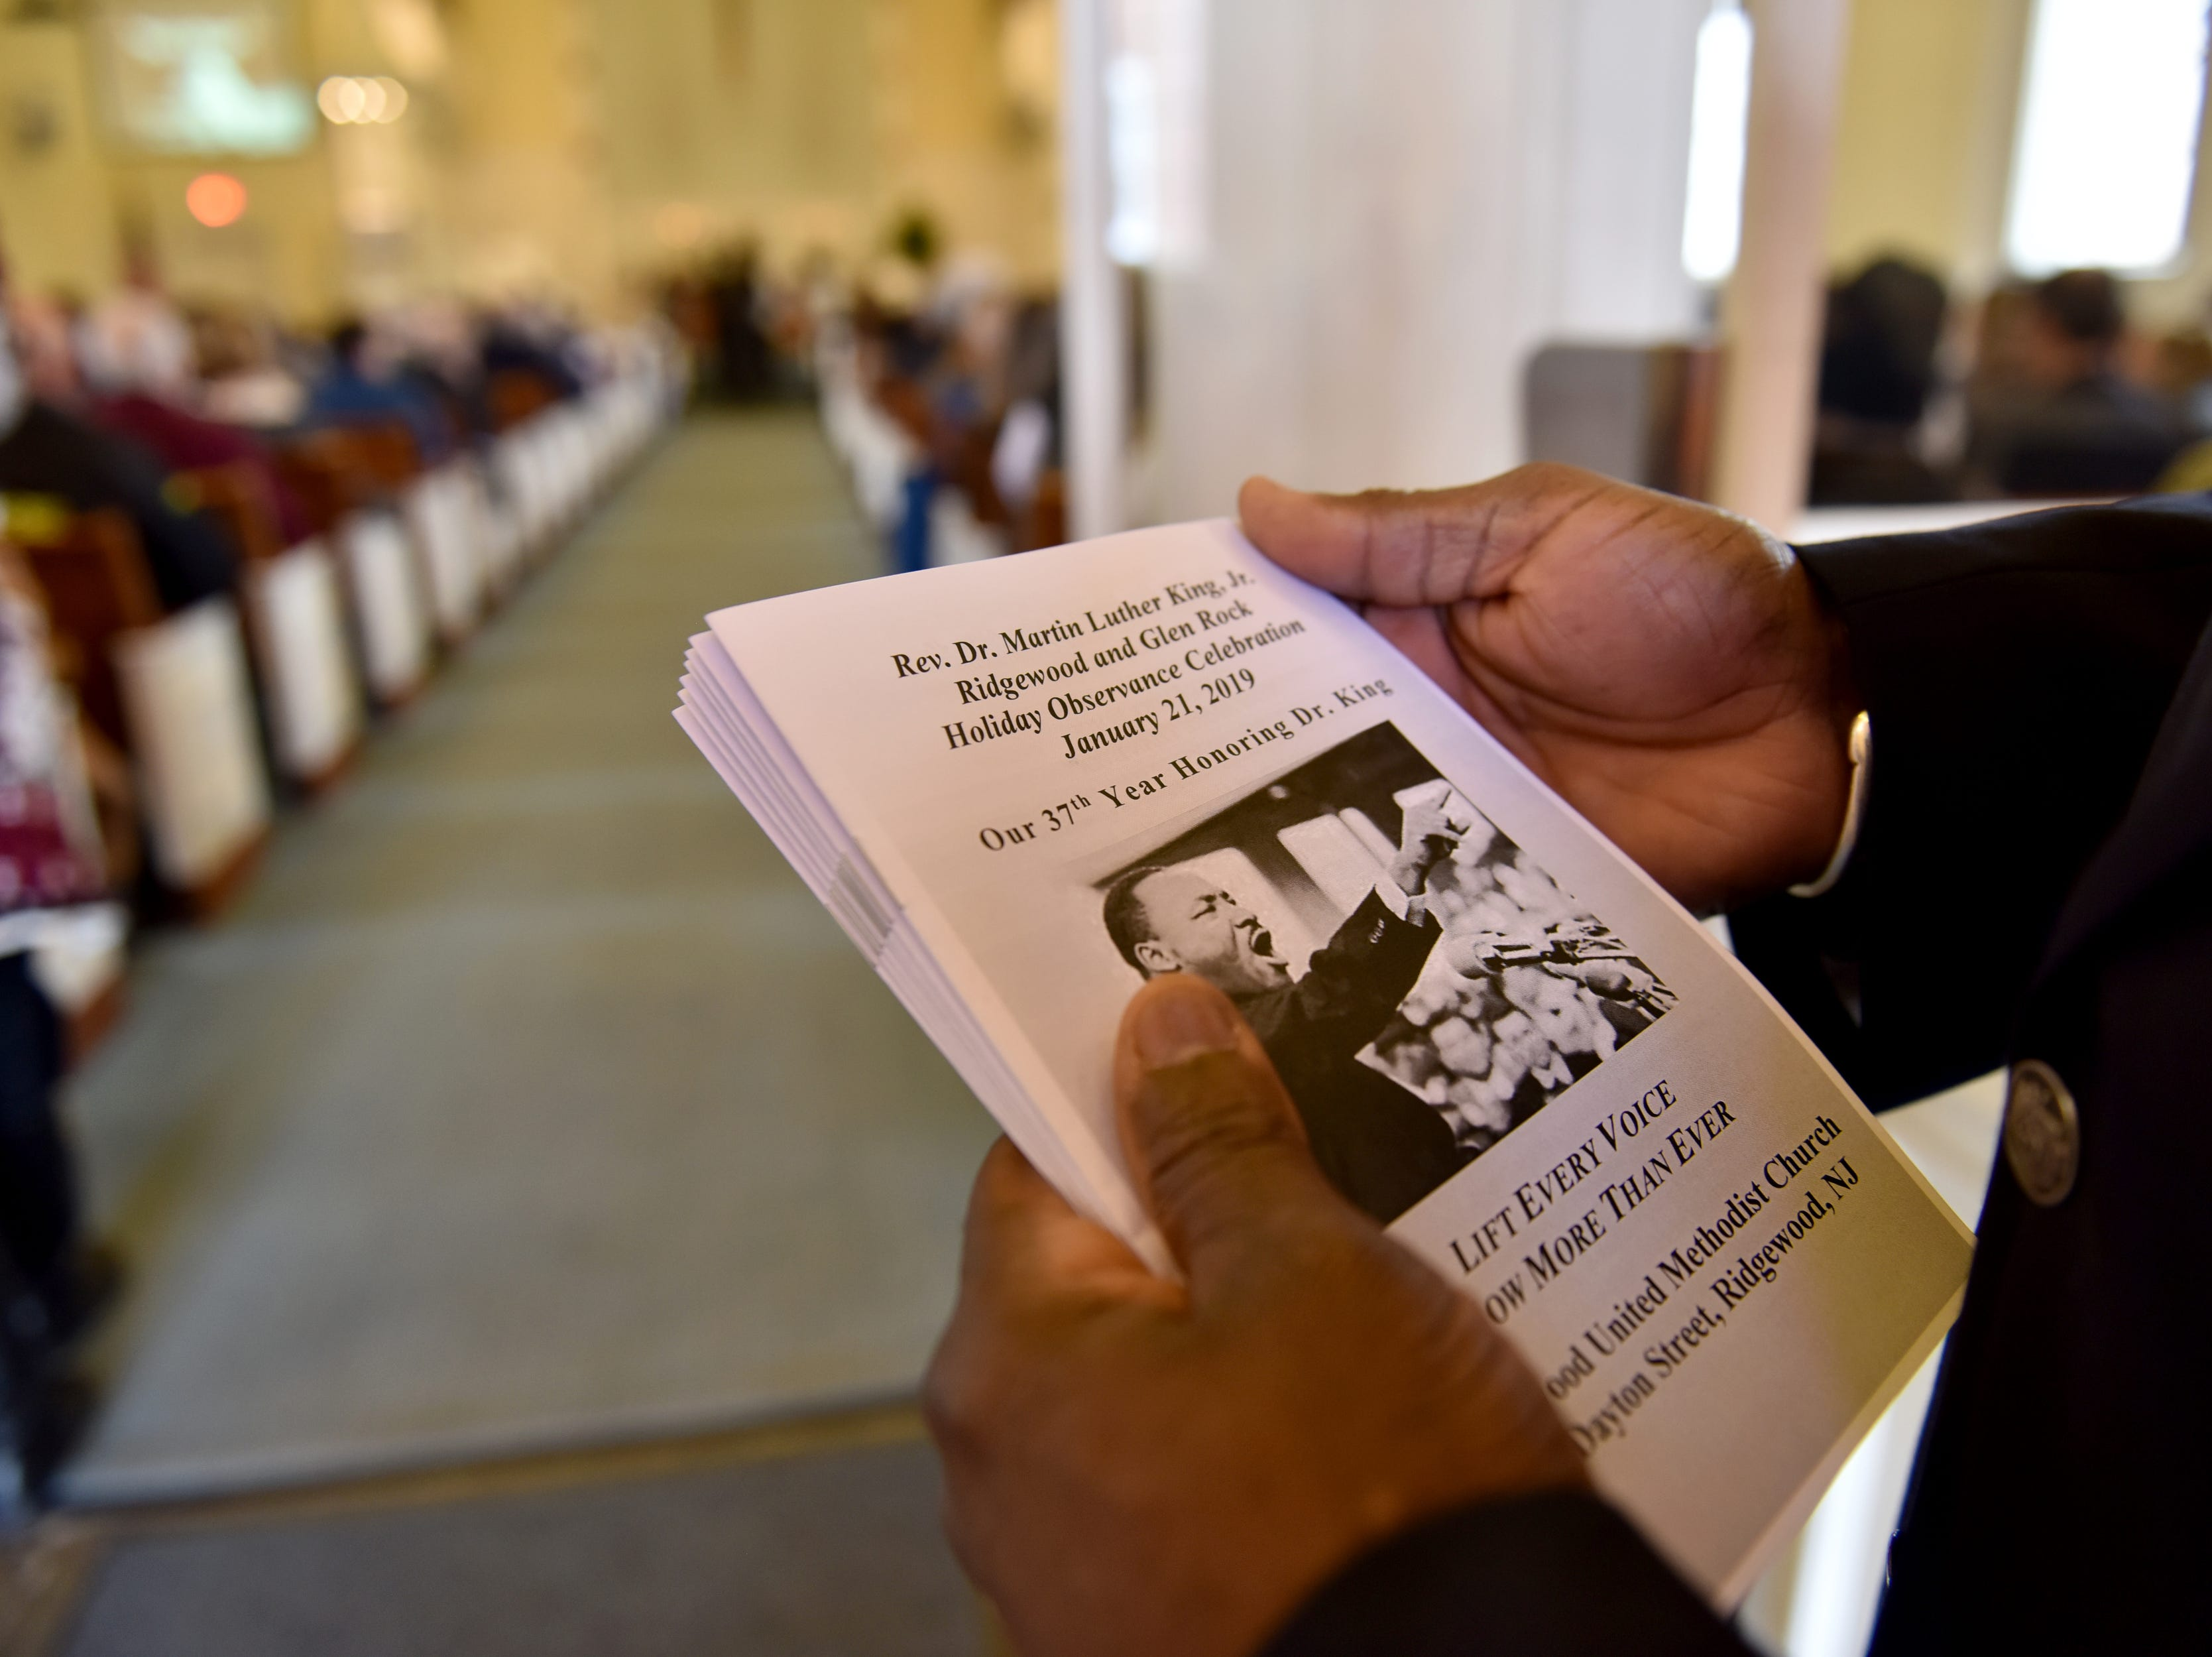 The Ridgewood United Methodist Church held its 37th year of honoring Dr. Martin Luther King, Jr. in Ridgewood, N.J. on Monday January 21, 2019. Area residents and religious leaders from many faiths attended the annual event.